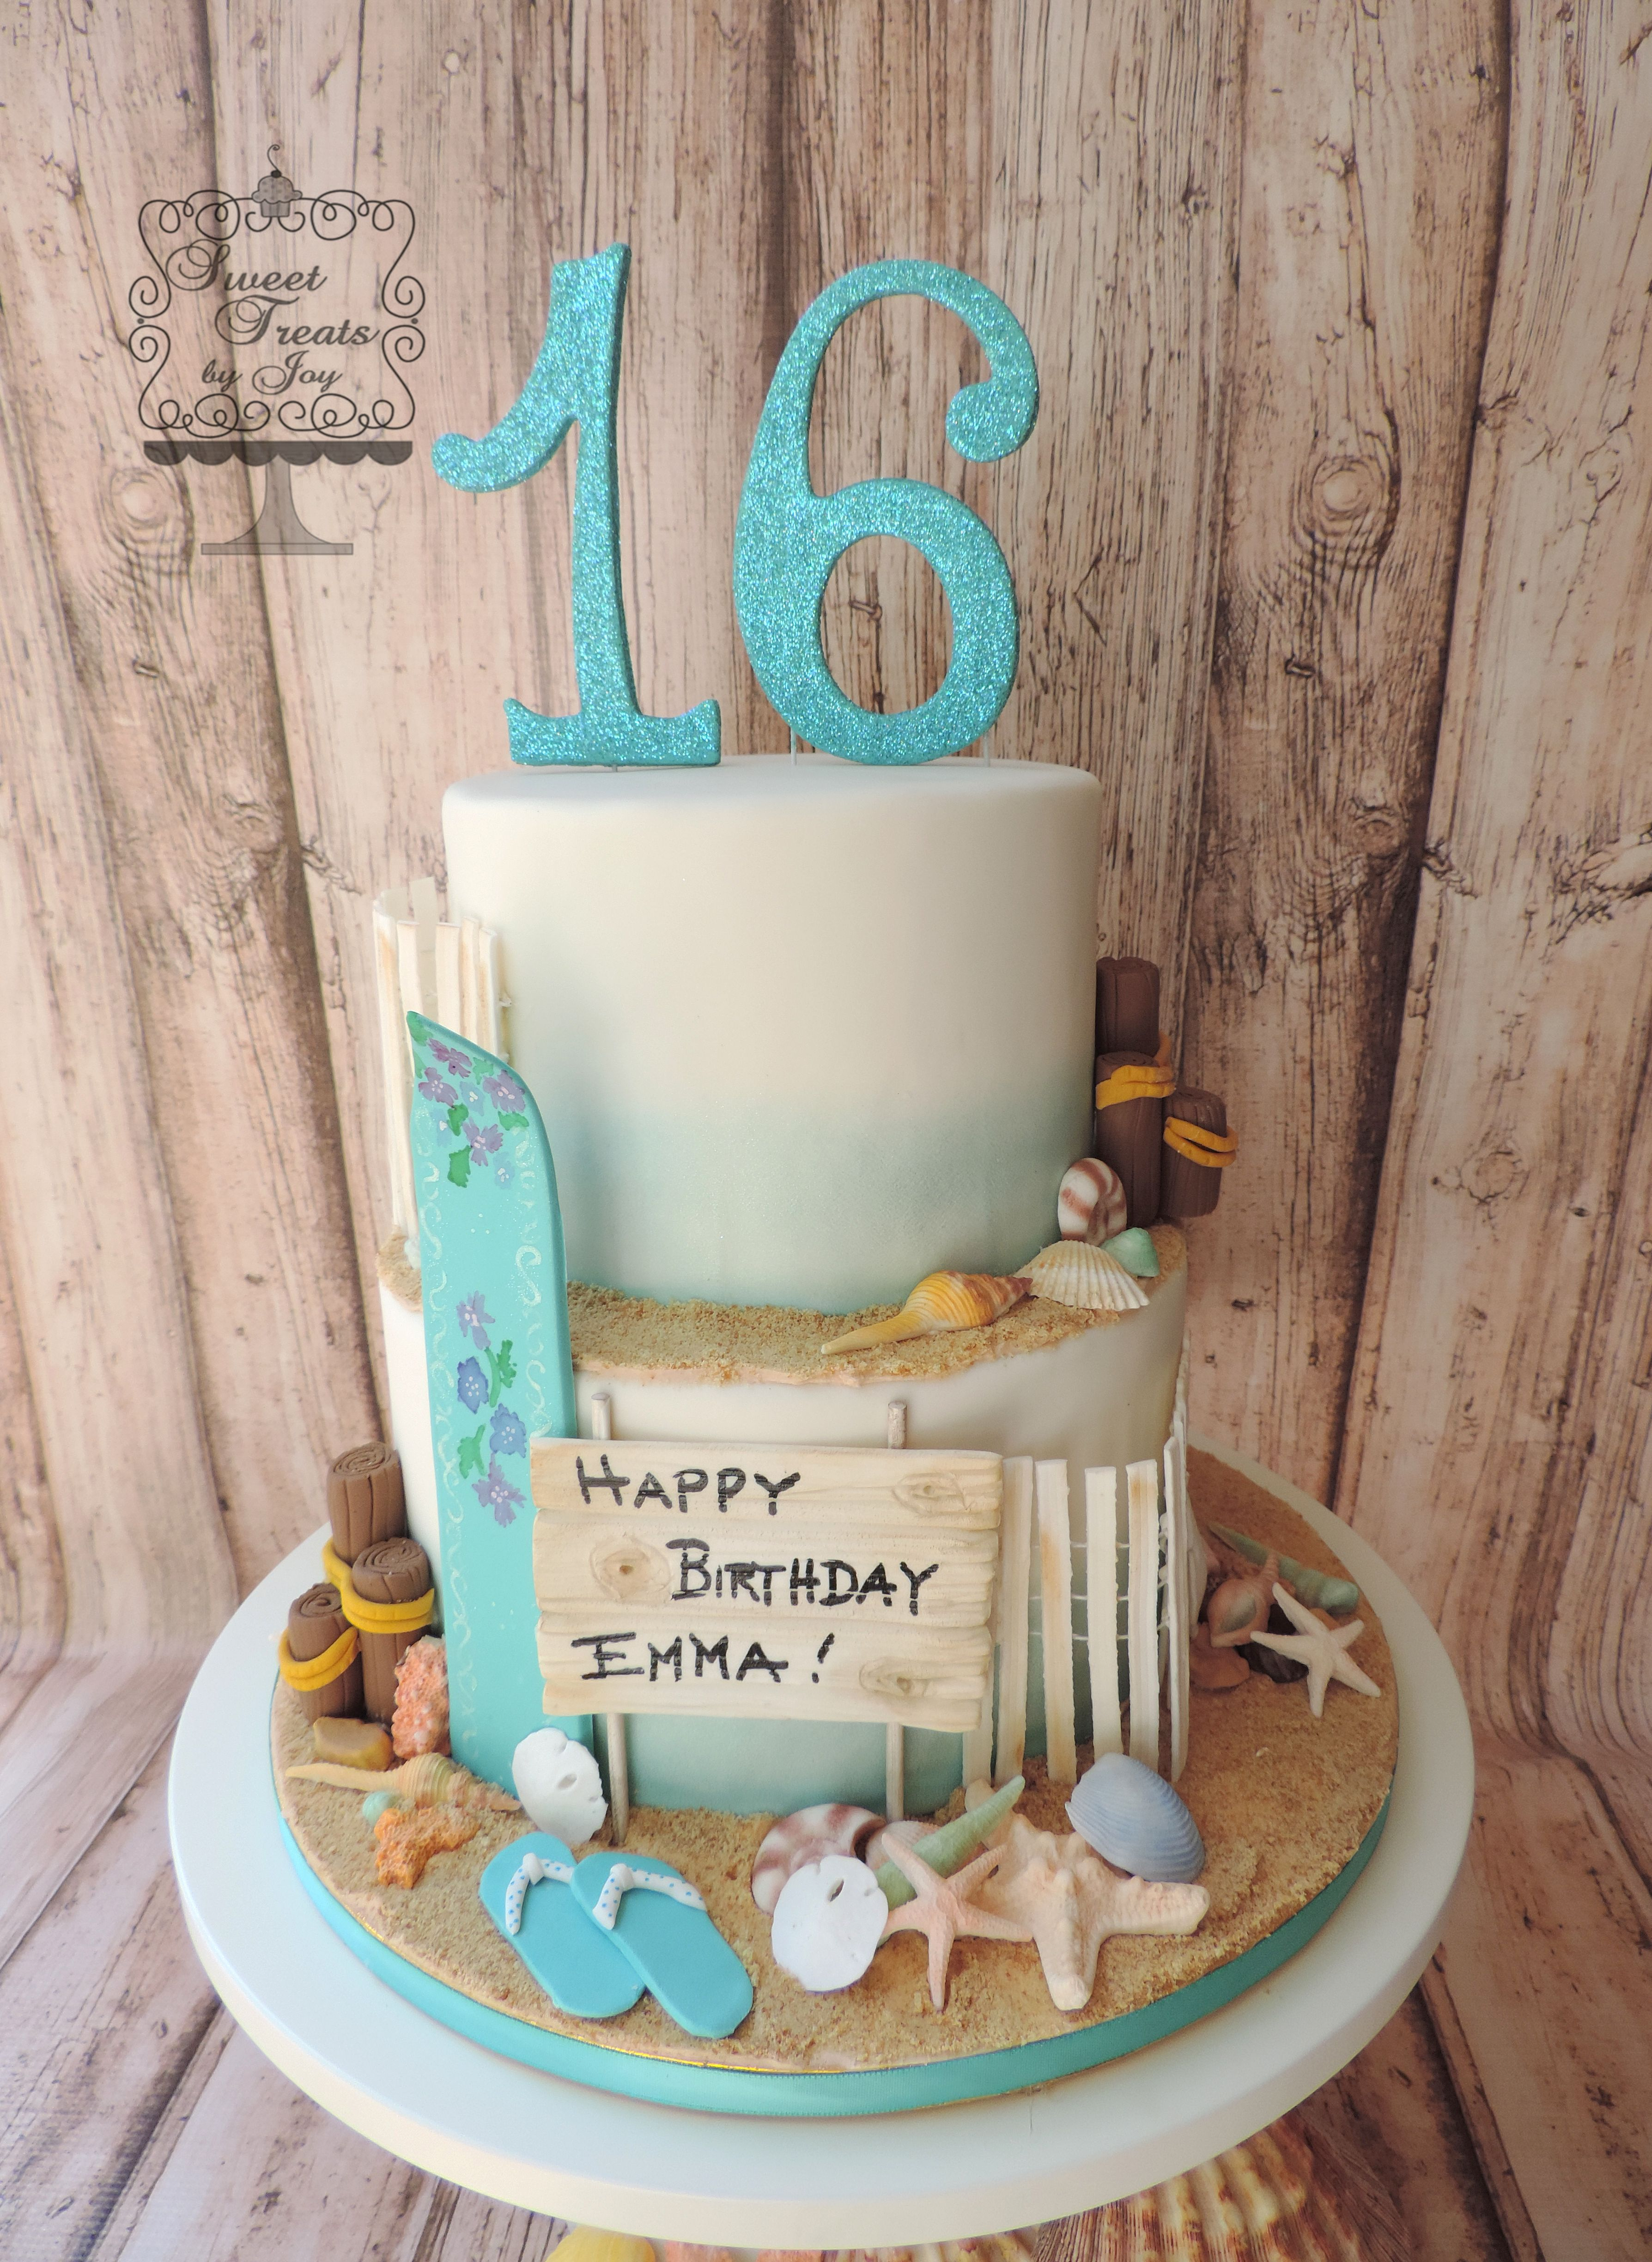 beach themed wedding cakes pinterest%0A Beach cake for Sweet    birthday  Surfboard  shells and all decorations  made from gum